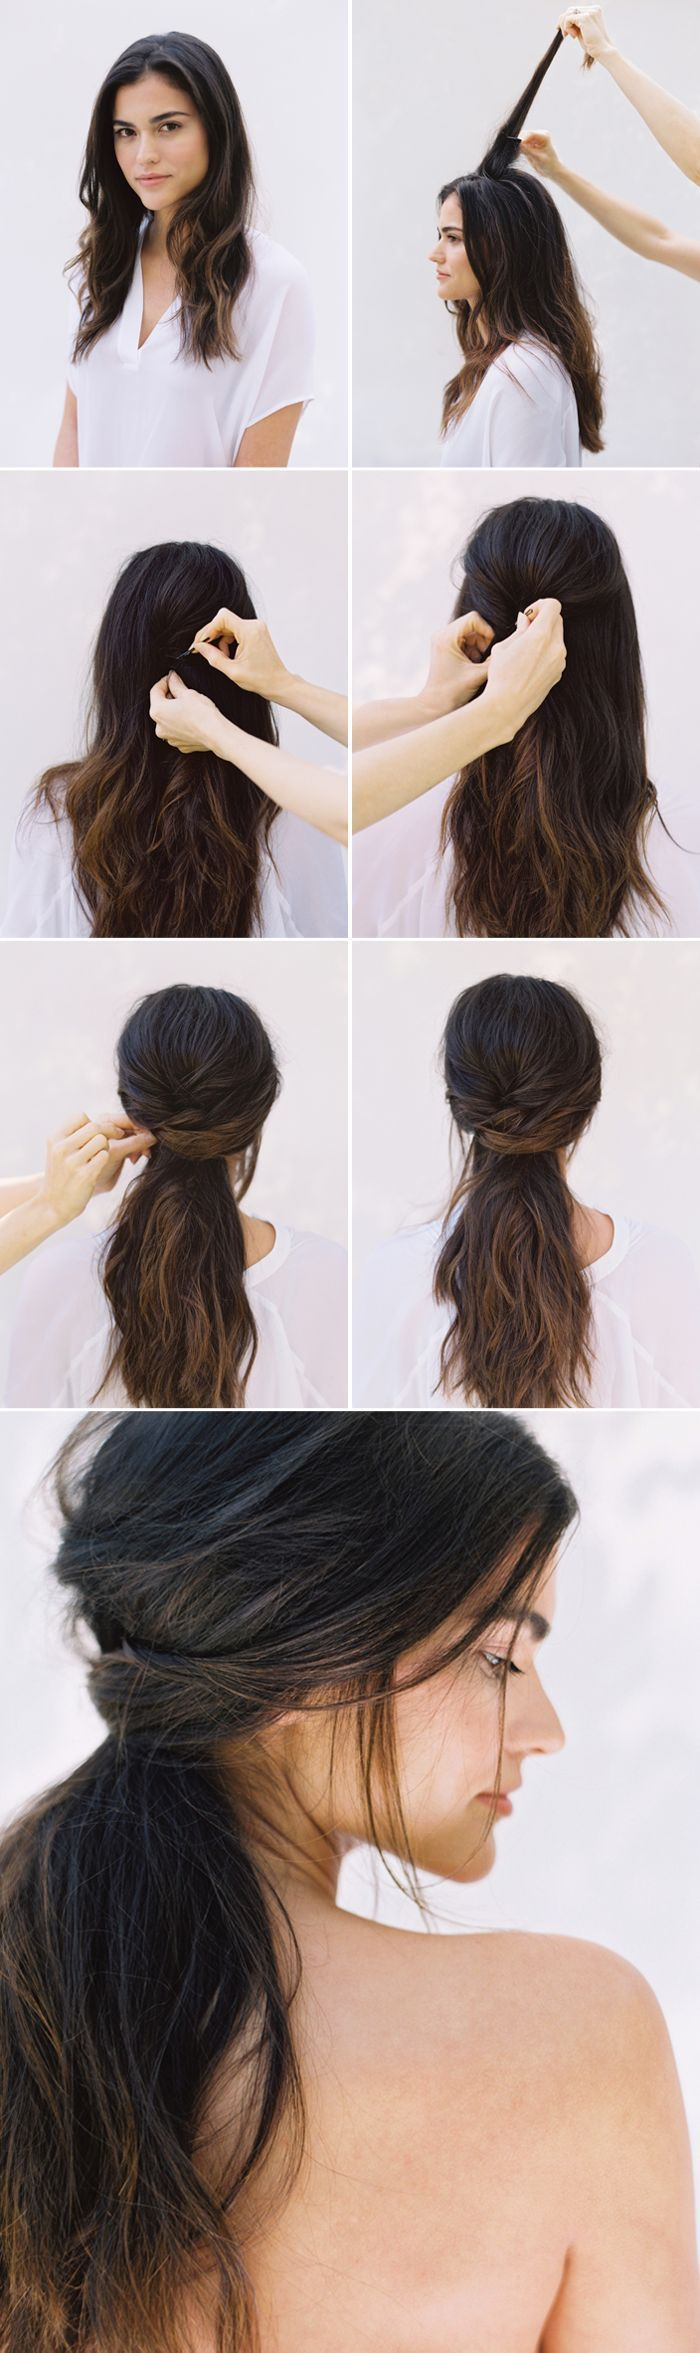 Diy Half Up Half Down Wedding Hair This With Some Boho Braids Tucked In There Hair Styles Wedding Hair Down Elegant Wedding Hair